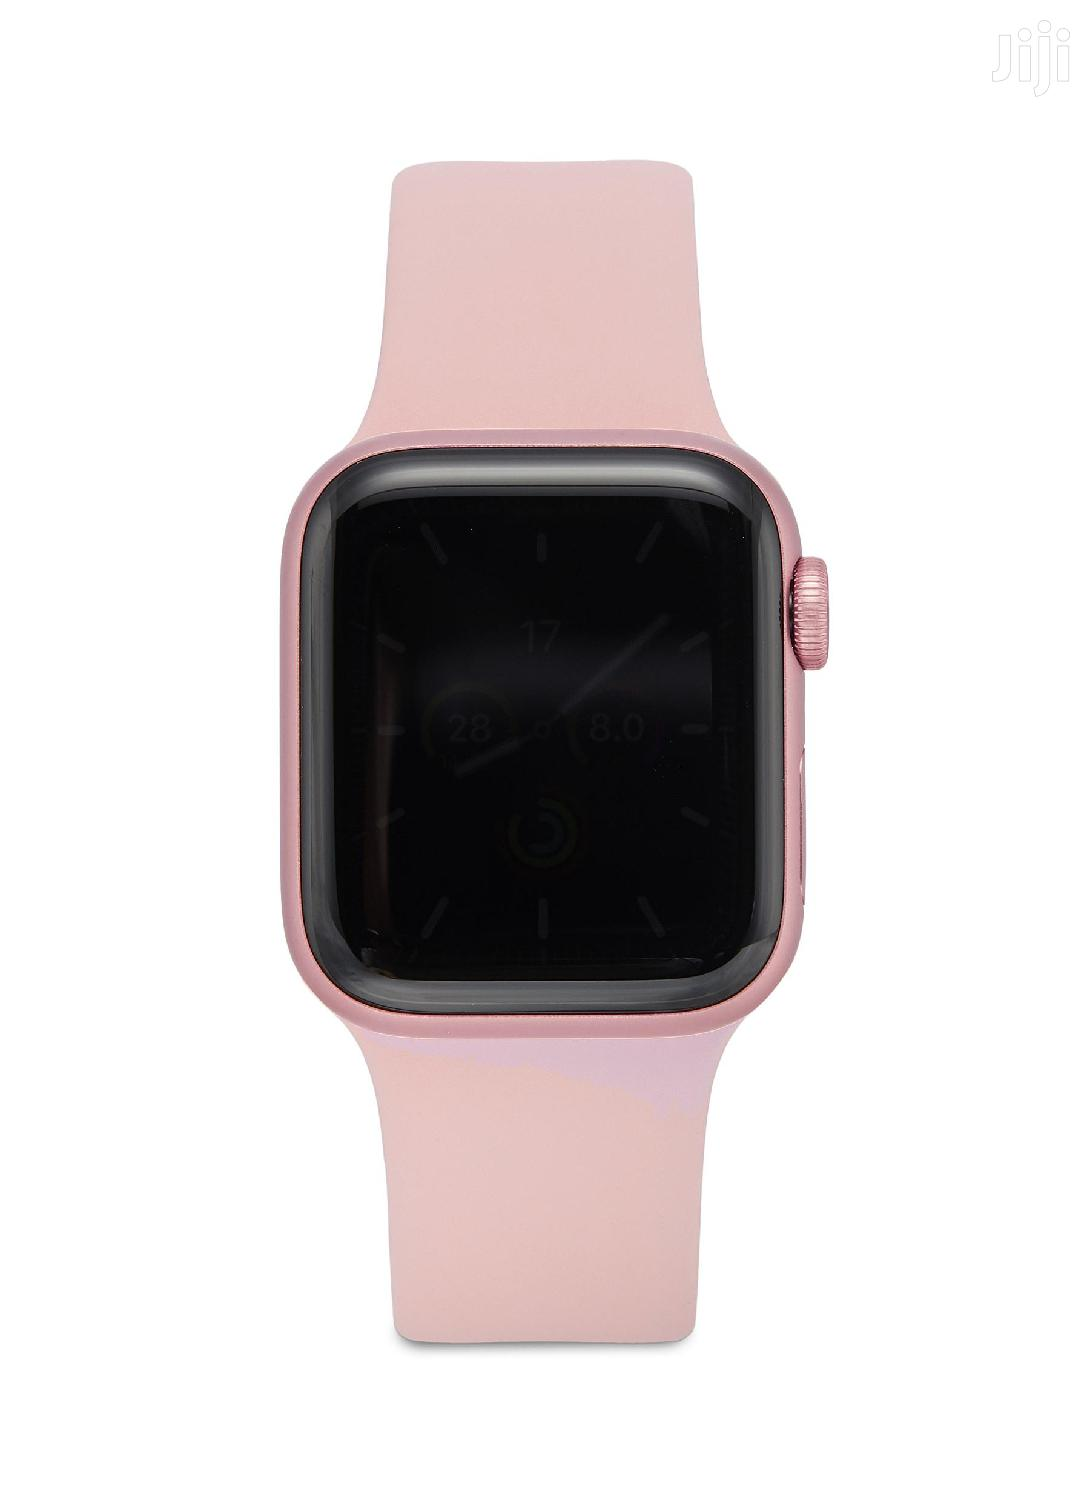 Apple Watch Series 5(GPS +Cellular )44mm | Smart Watches & Trackers for sale in Osu, Greater Accra, Ghana